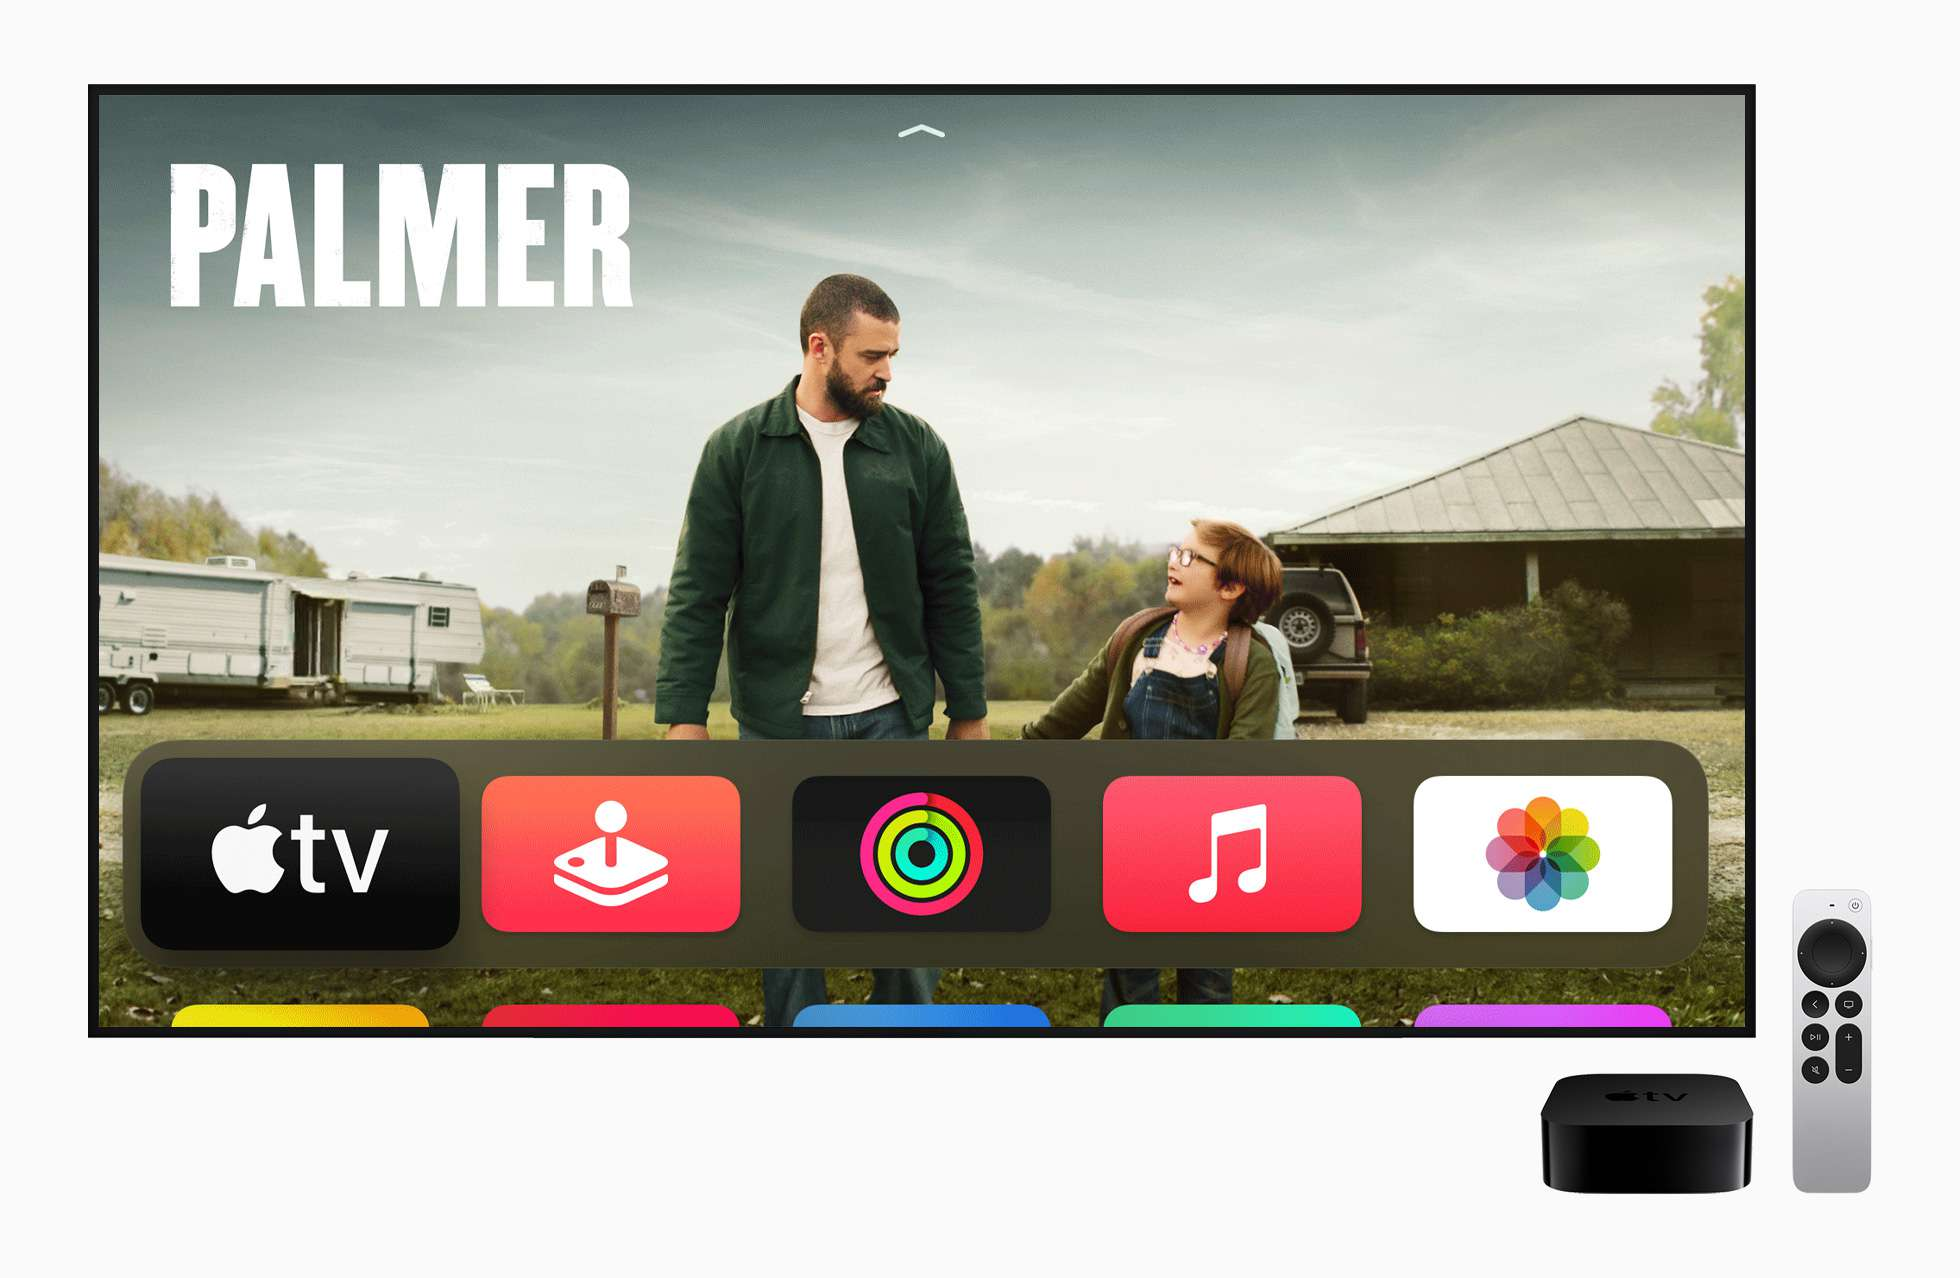 4K Apple TV and Remote next to a television screen displaying Apple TV apps and a screen from